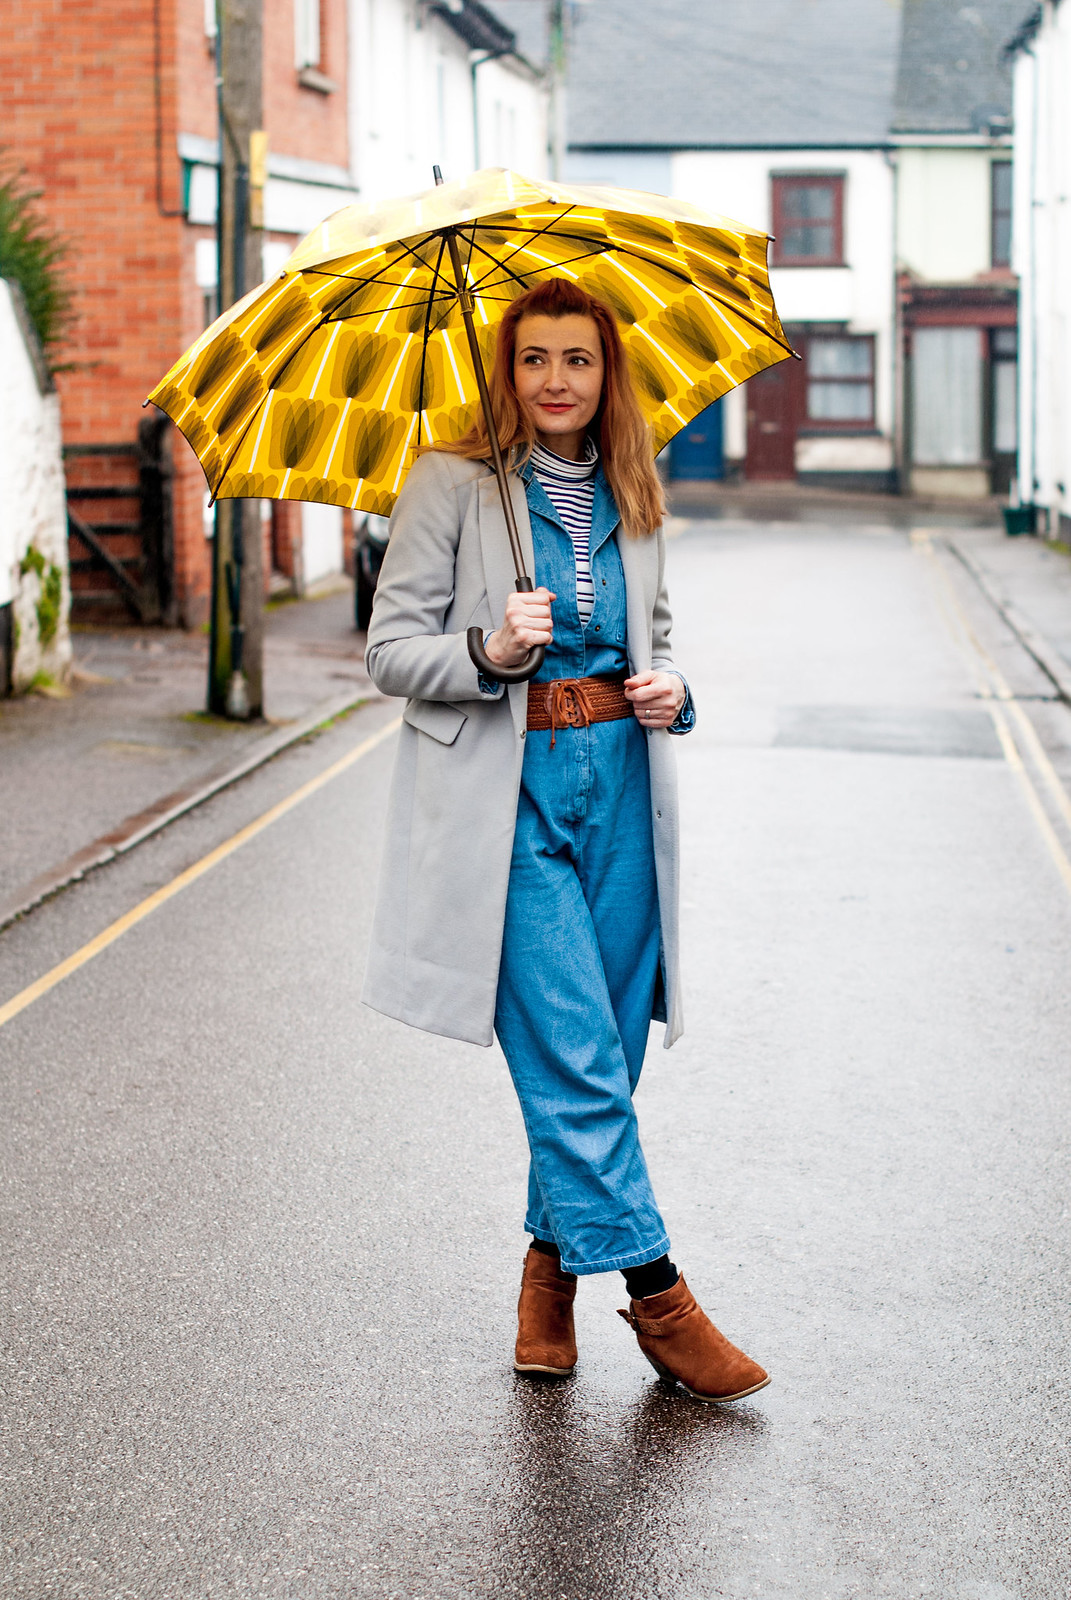 Styling a Boiler Suit for a Rainy Spring Day: Denim boiler suit \ grey duster coat \ striped Breton roll neck \ tan suede ankle boots | Not Dressed As Lamb, over 40 fashion